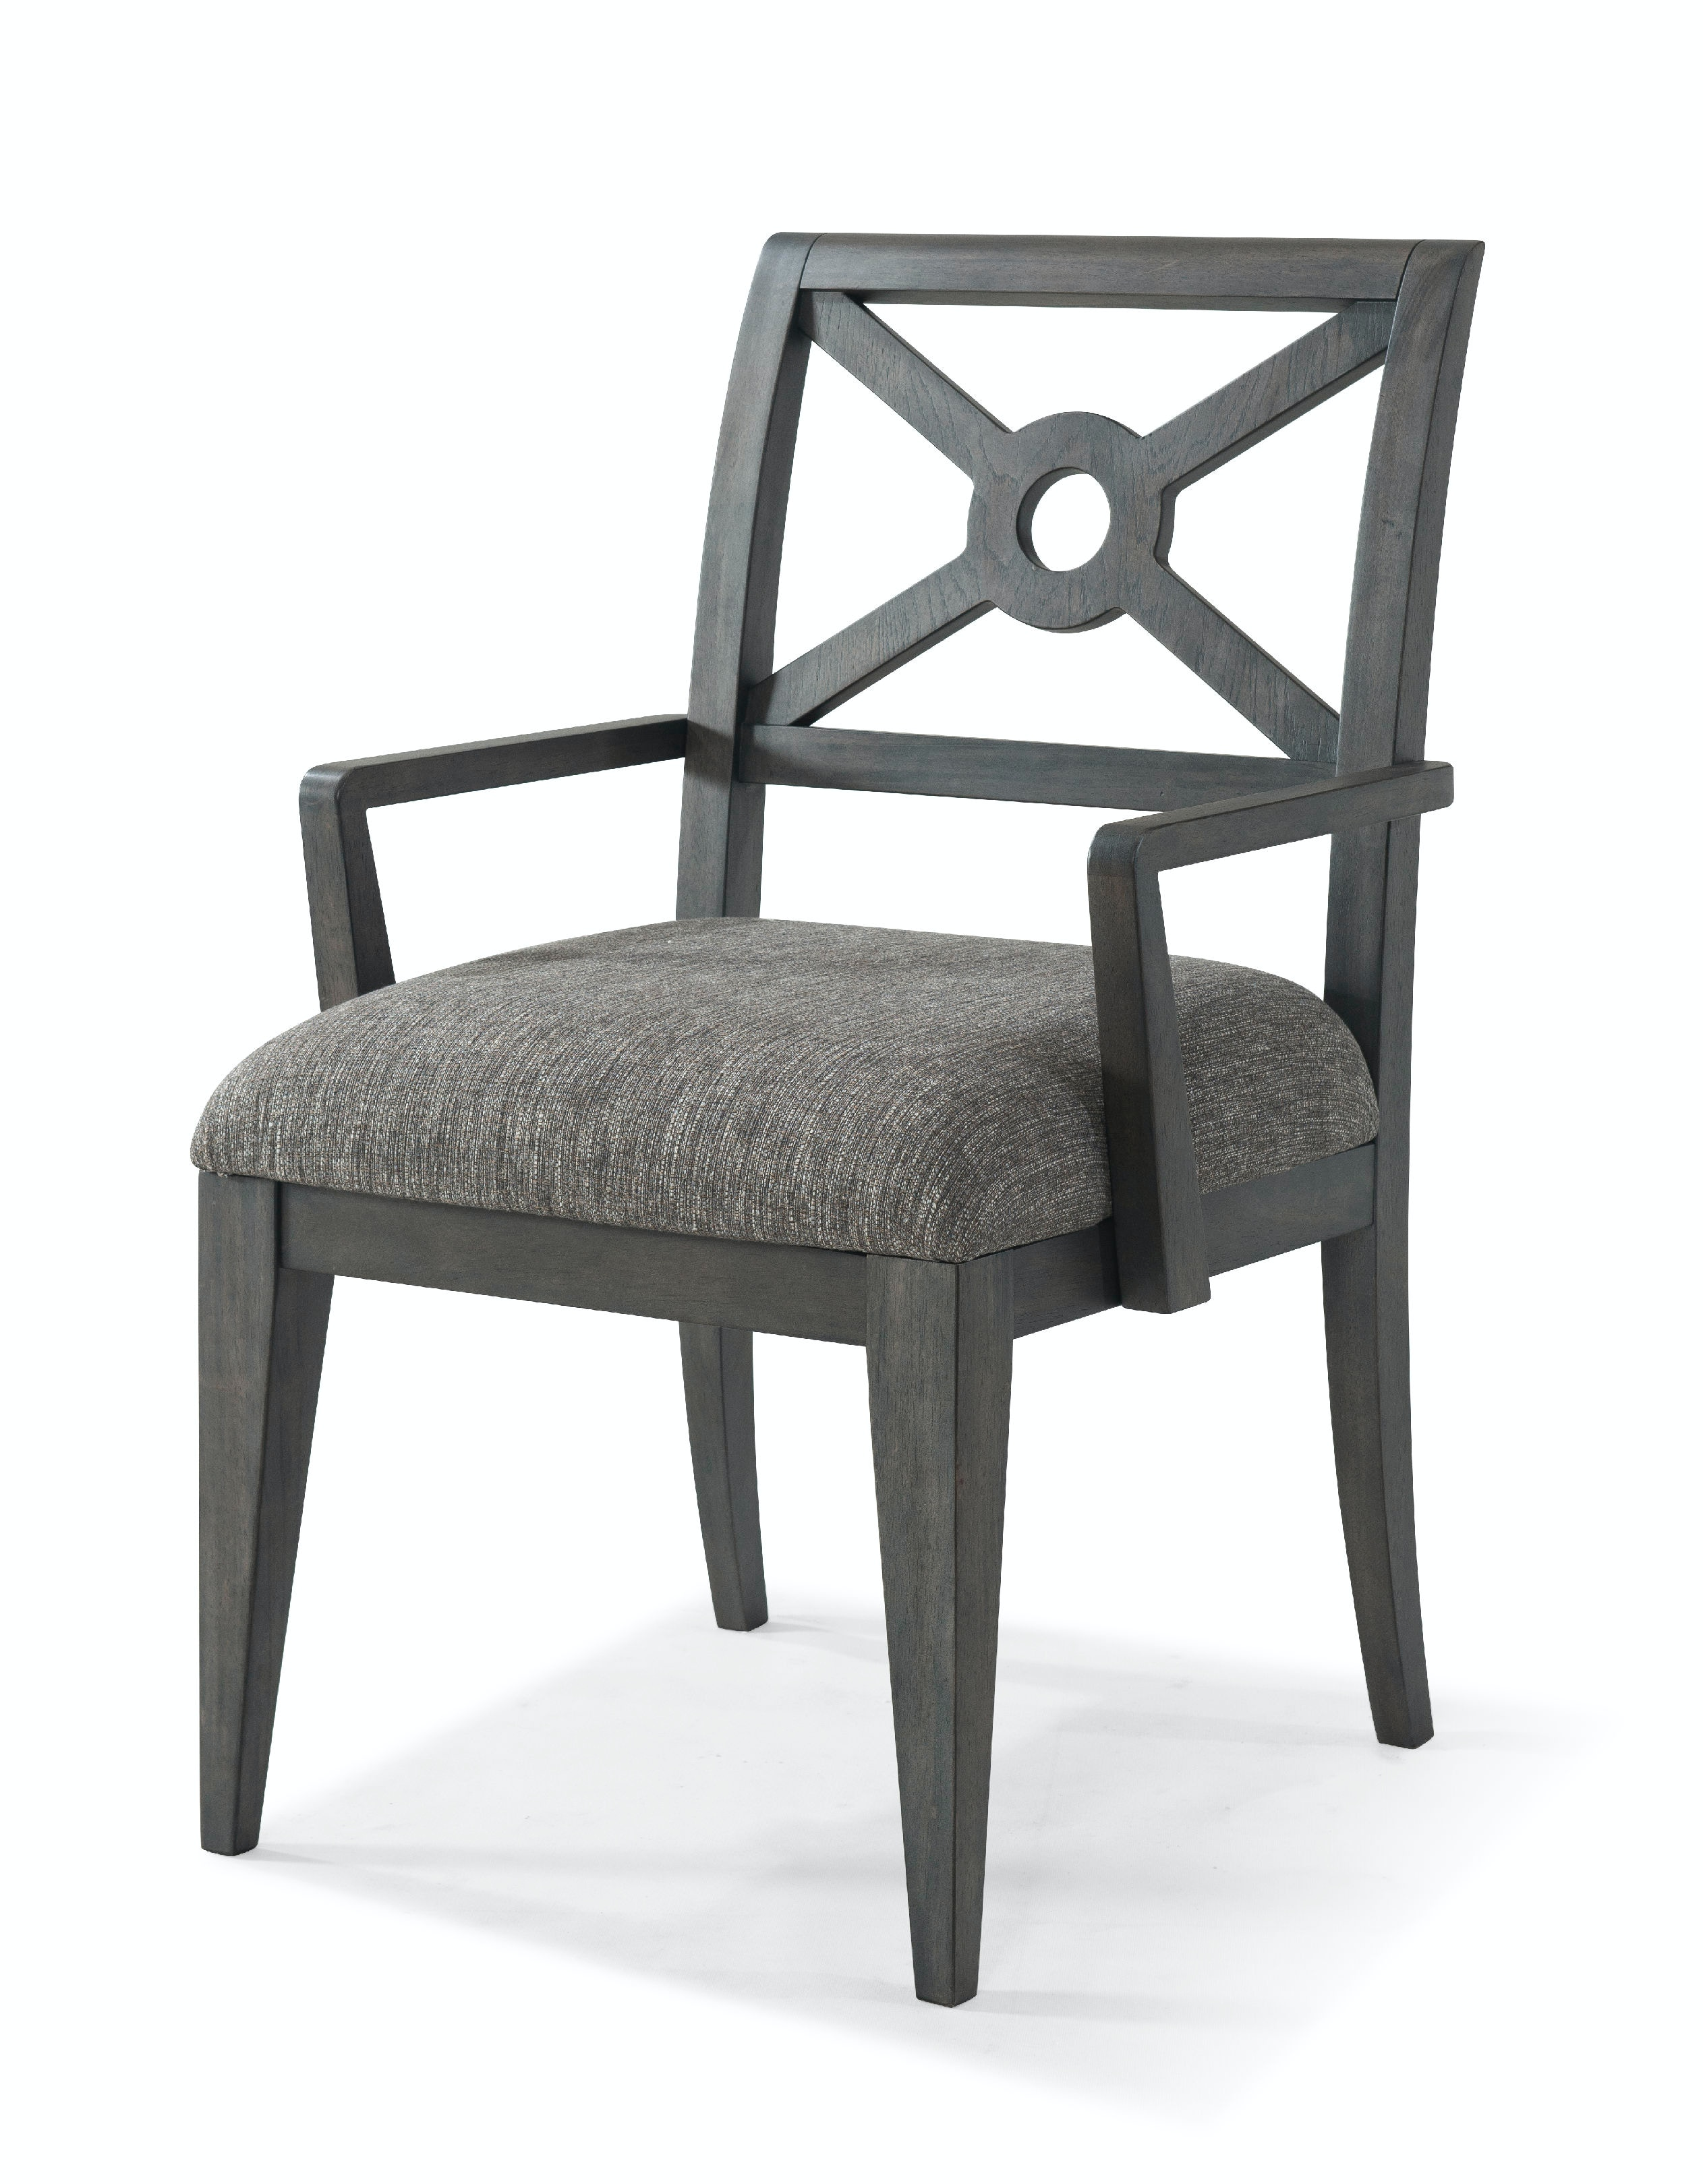 925 905 DRC. Dining Room Chair